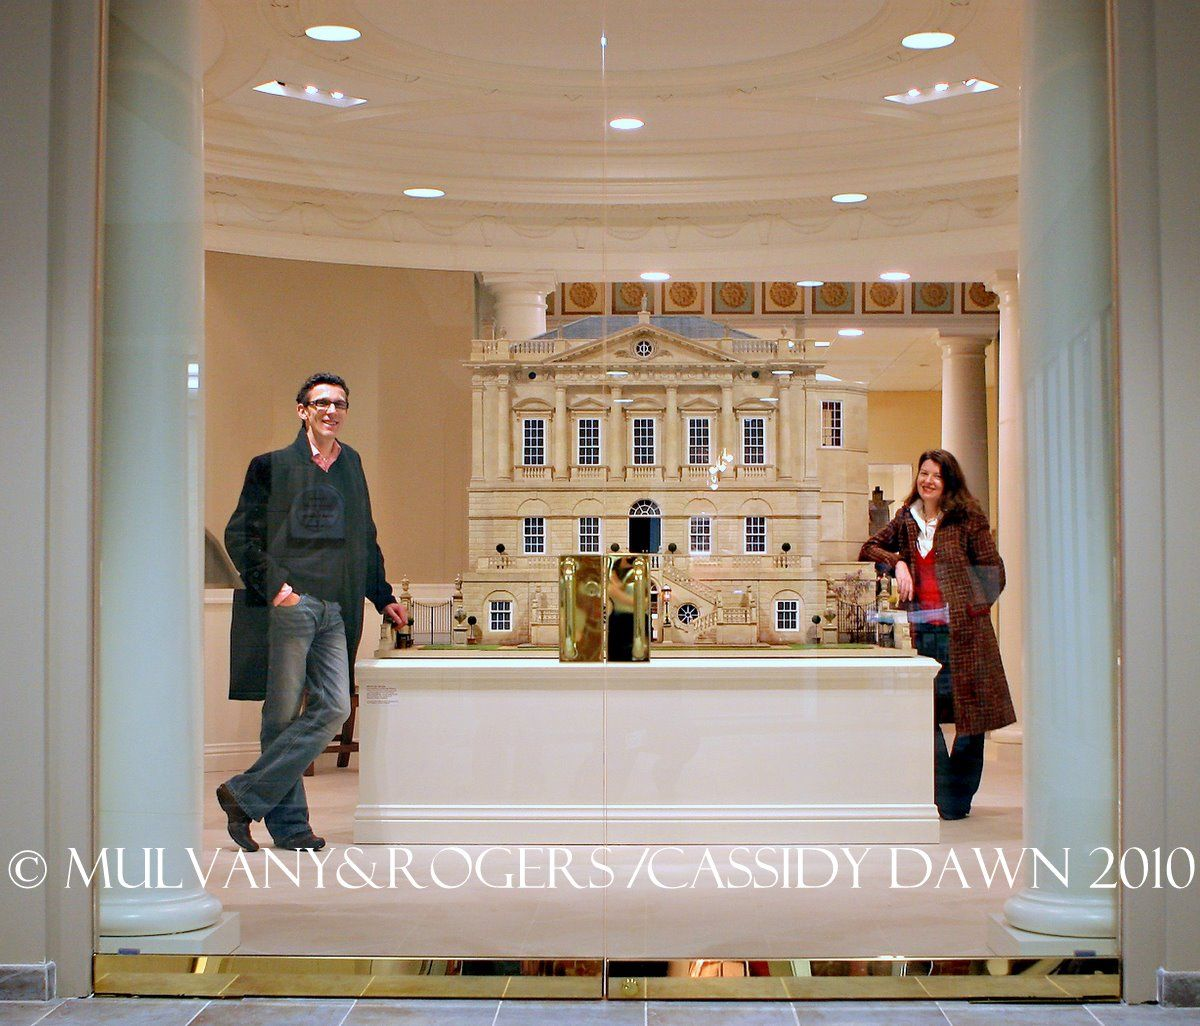 Designer dioramas miniature rooms - Internationally Acclaimed Designers Of One Twelfth Scale Architectural Miniatures And Dolls Houses Mulvany Rogers Re Create Historically Significant